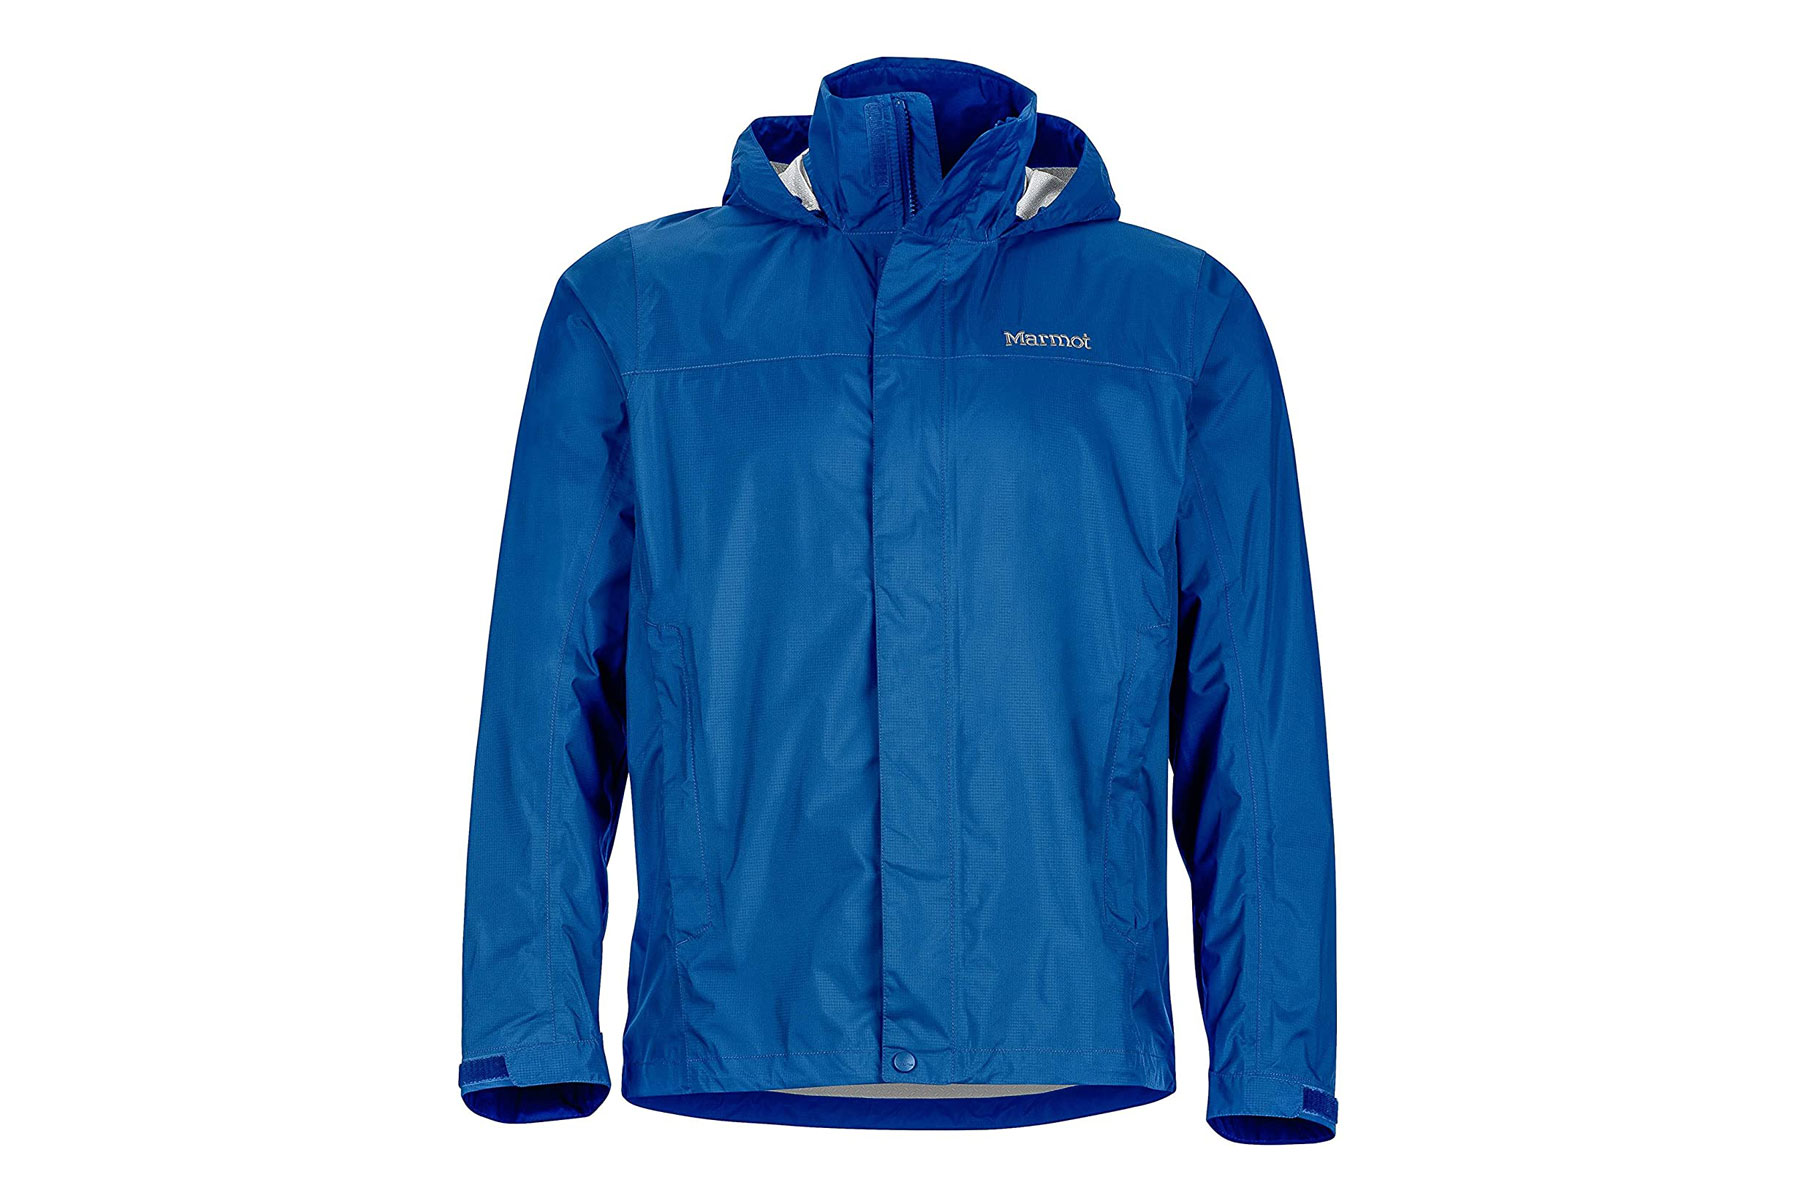 Men's blue rain jacket